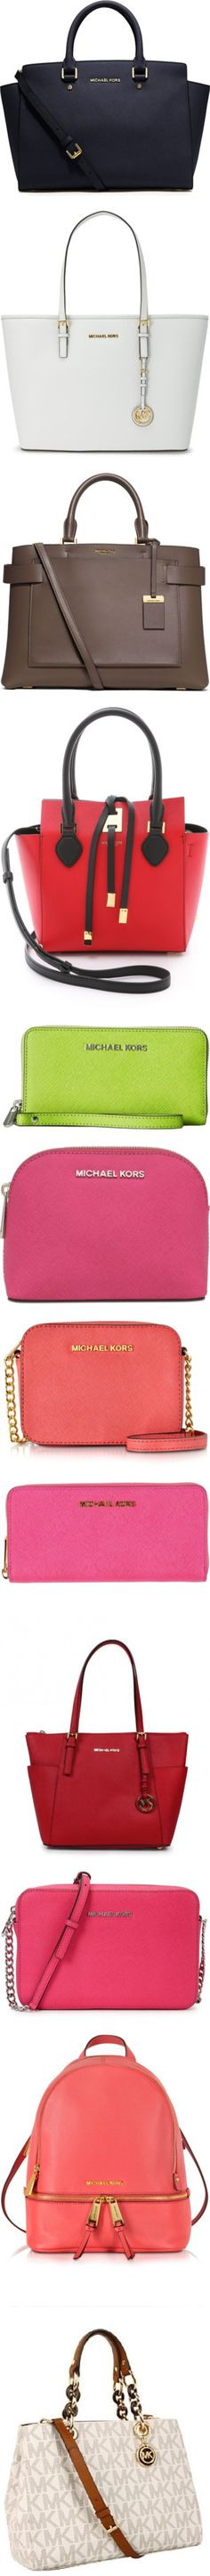 """""""Micheal Kors Purse"""" by ayannap ❤ liked on Polyvore"""